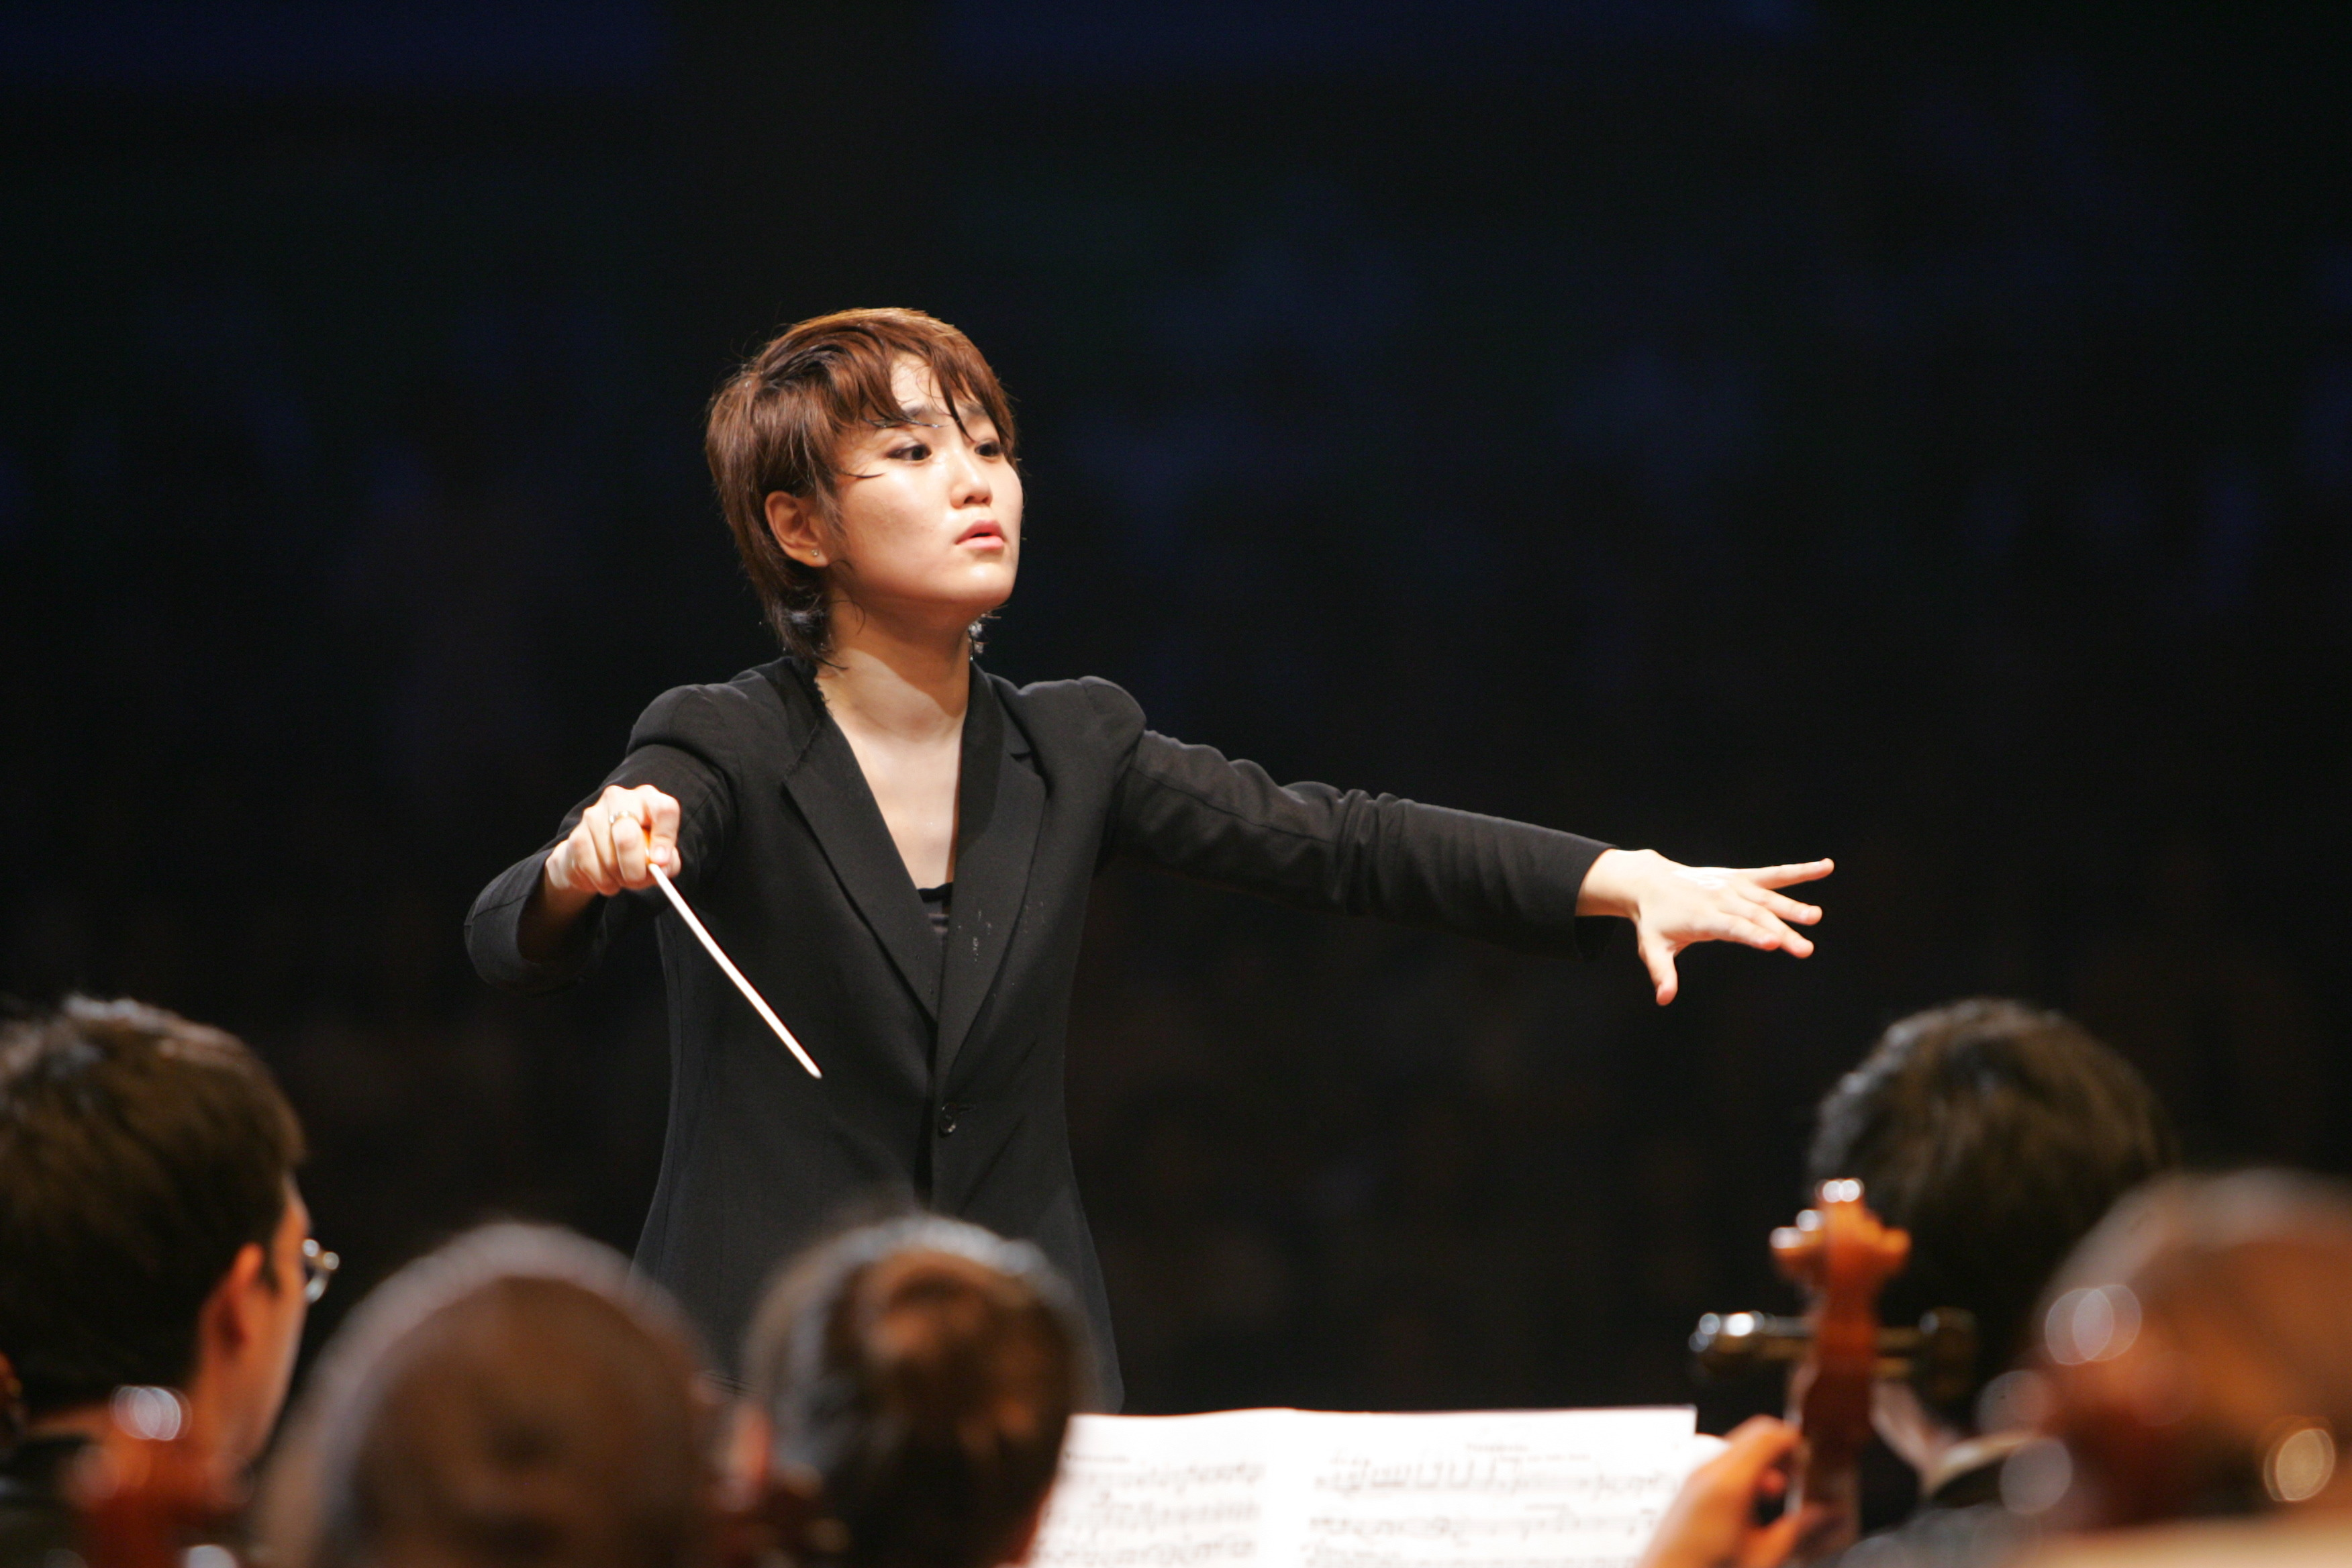 Qatar Philharmonic Music Director Resigns After Proms Performance